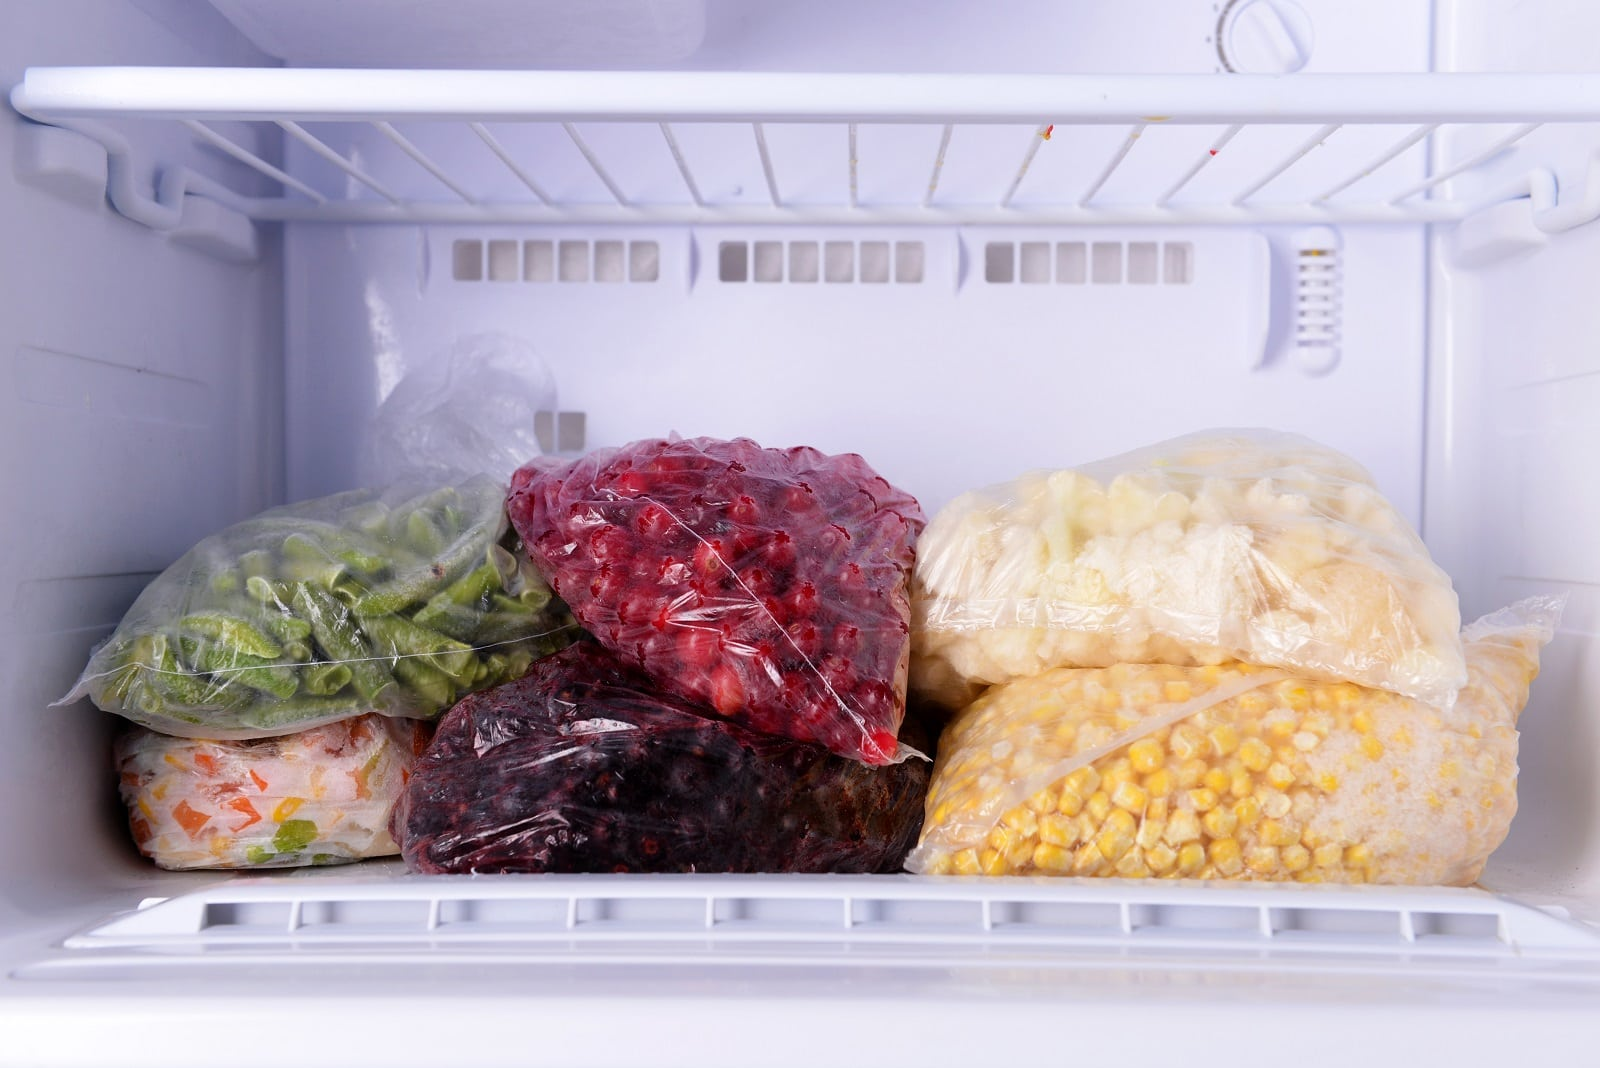 Can You Refreeze Thawed Frozen Food